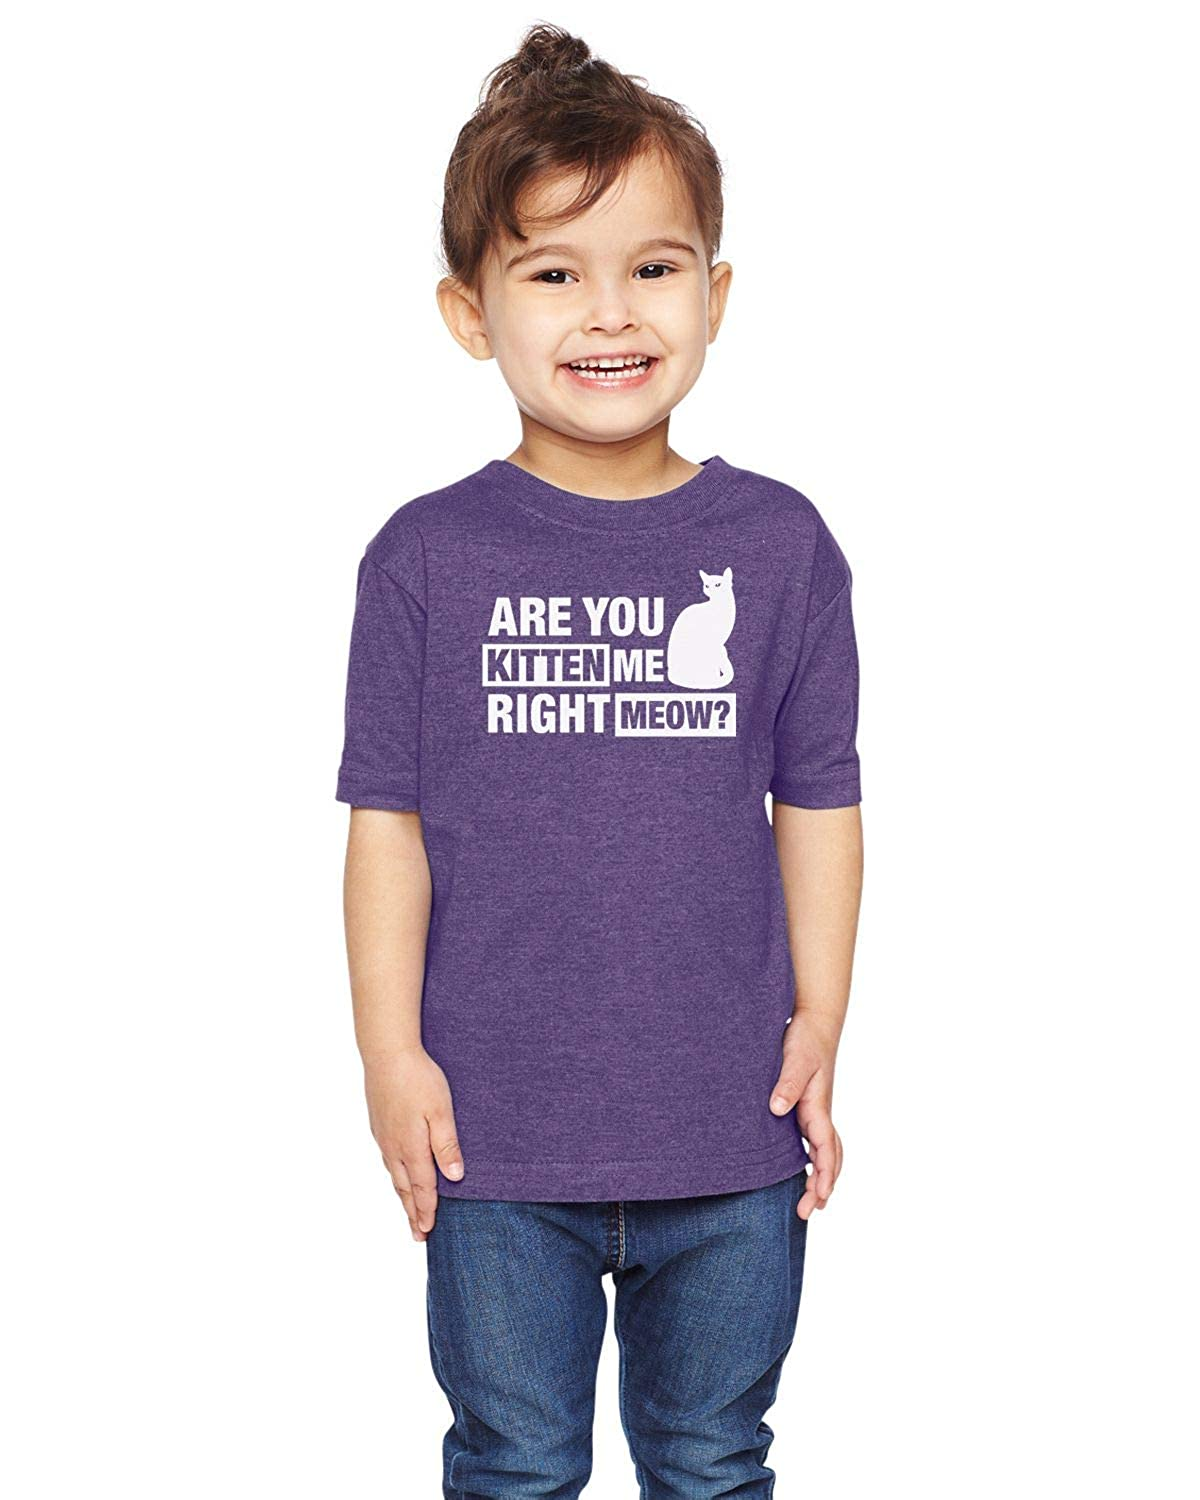 are You Kitten Me Right Meow Unisex Toddler Shirt